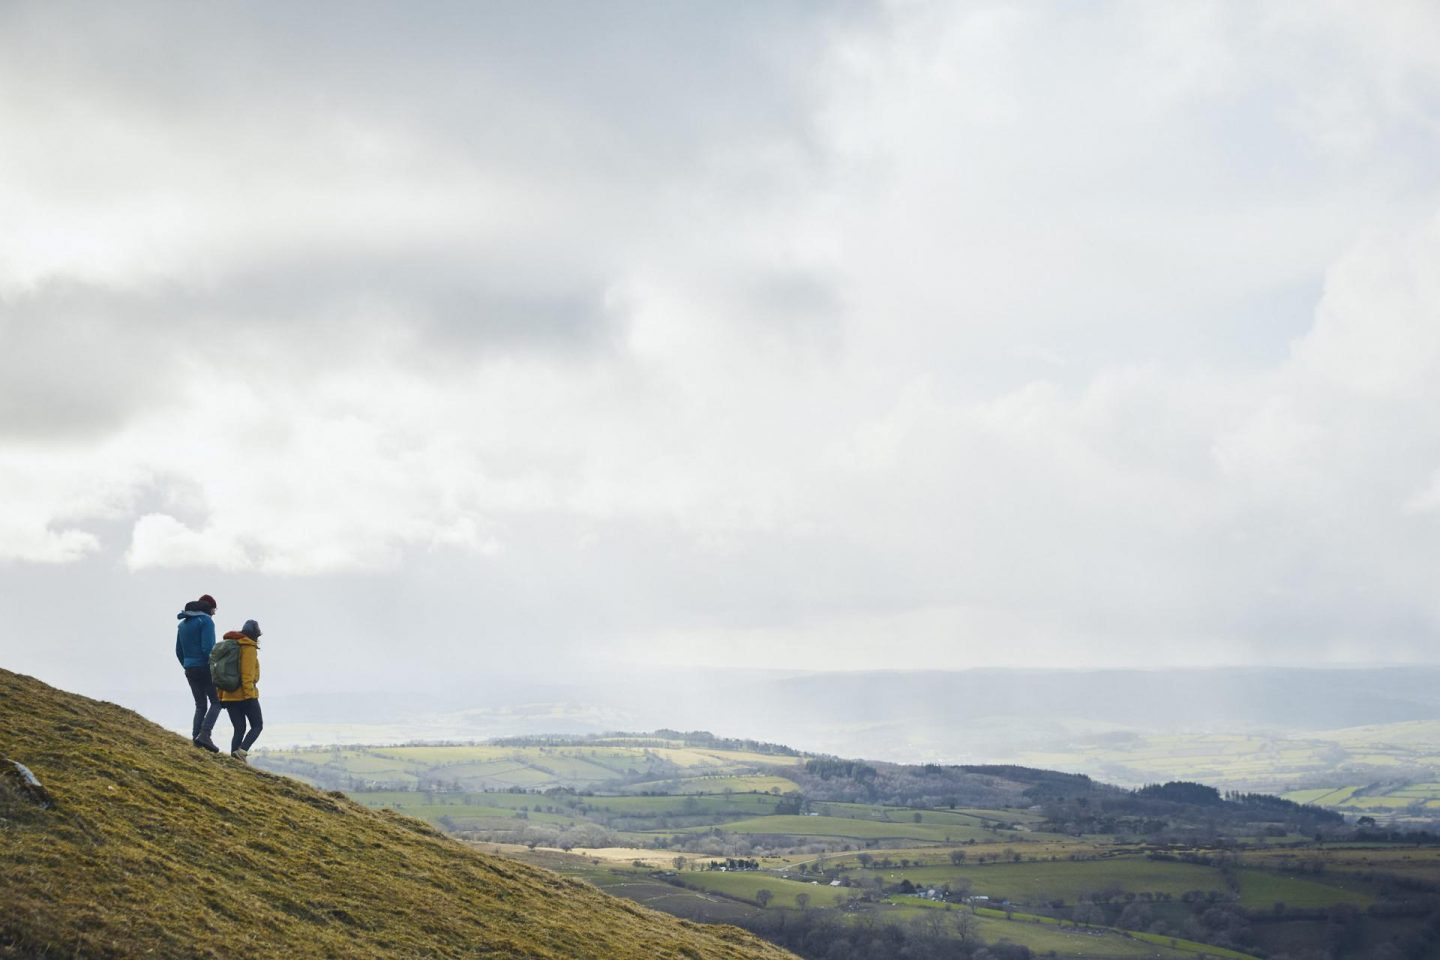 Outdoors for Happiness   How To Change Your Life And Mental Health